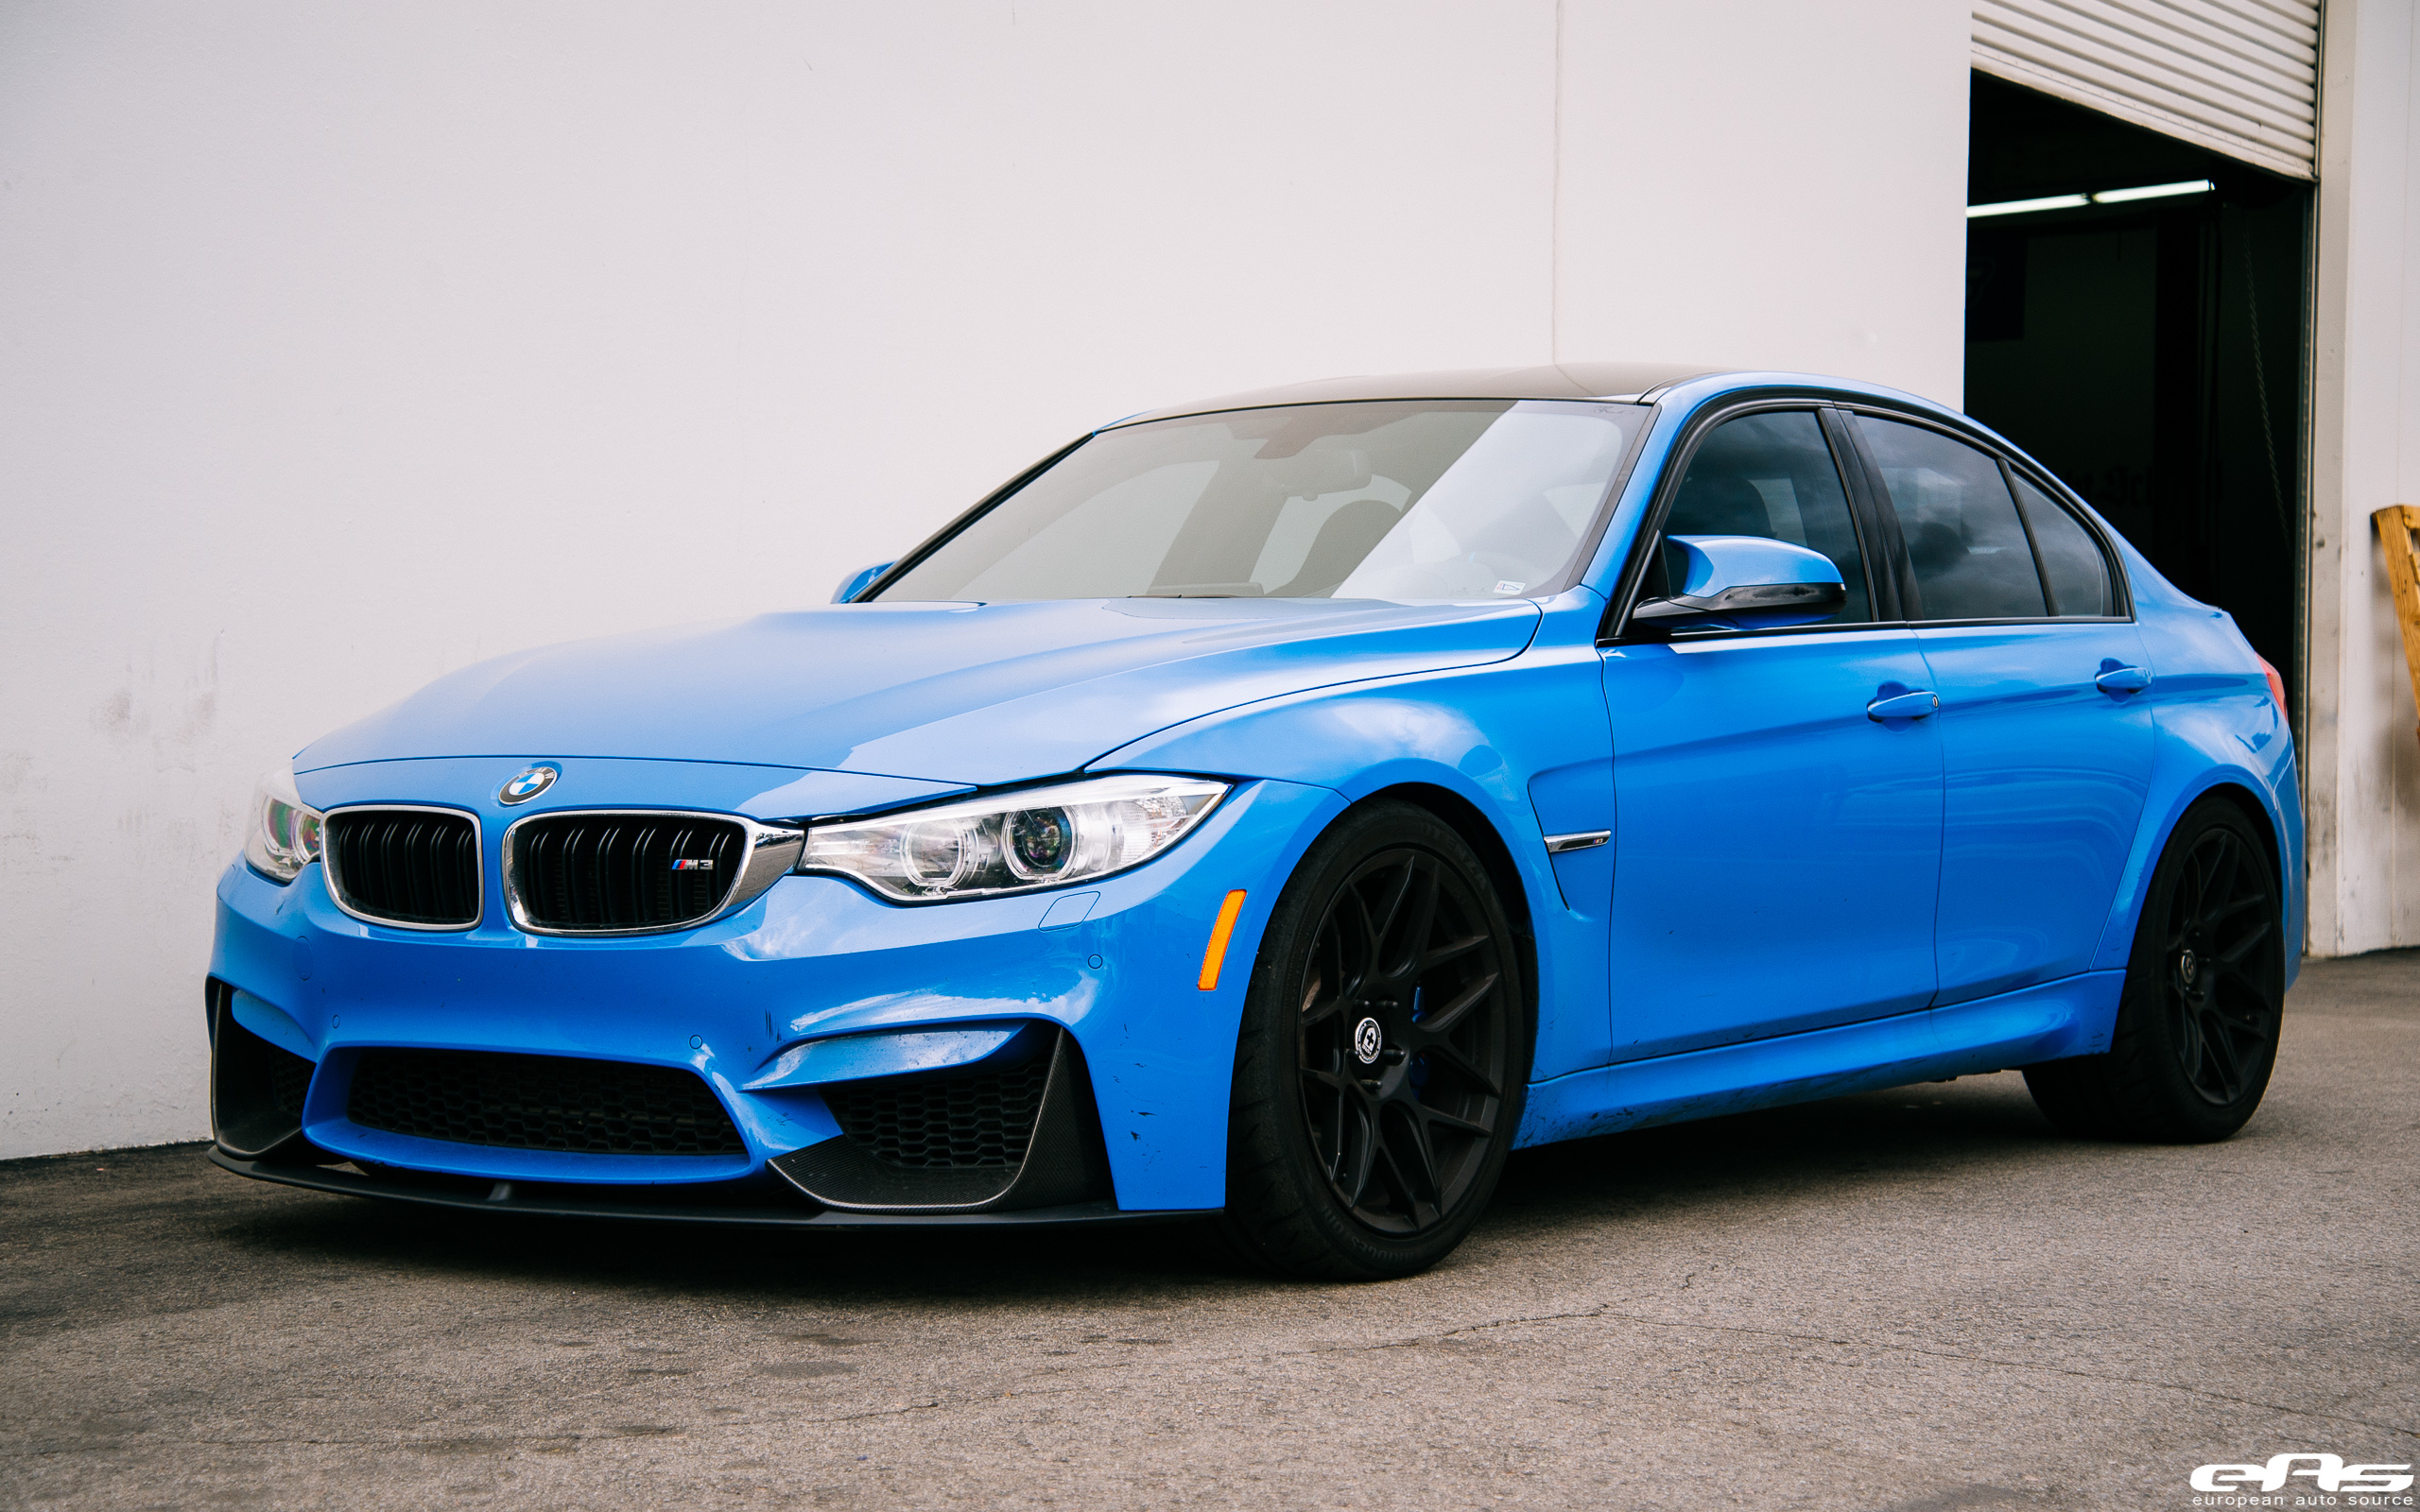 Bmw Racing Parts U003eu003e Yas Marina Blue BMW M3 Gets Some Racing Upgrades